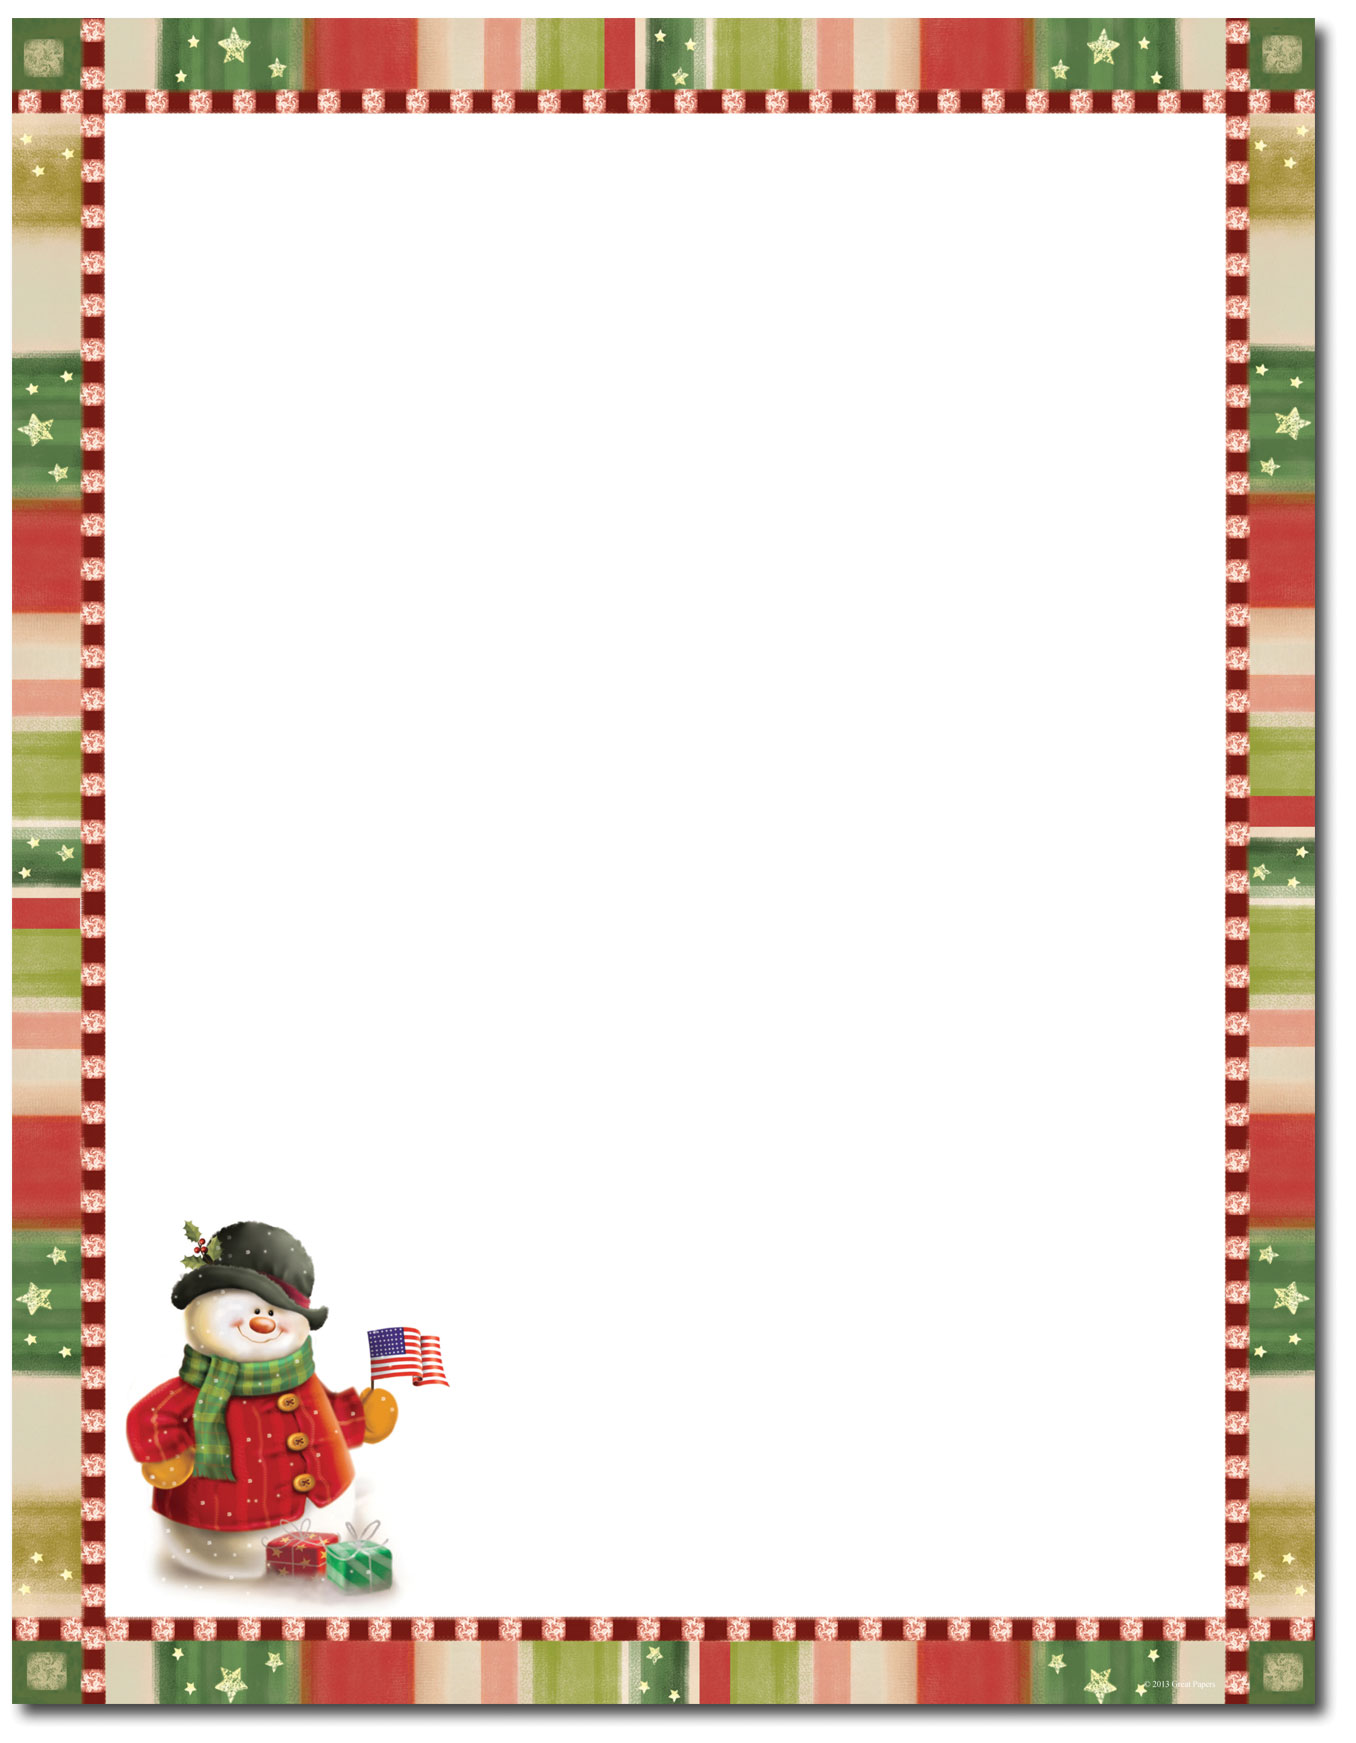 Christmas letterhead free clipart clipart free Free Christmas Letterhead Cliparts, Download Free Clip Art, Free ... clipart free